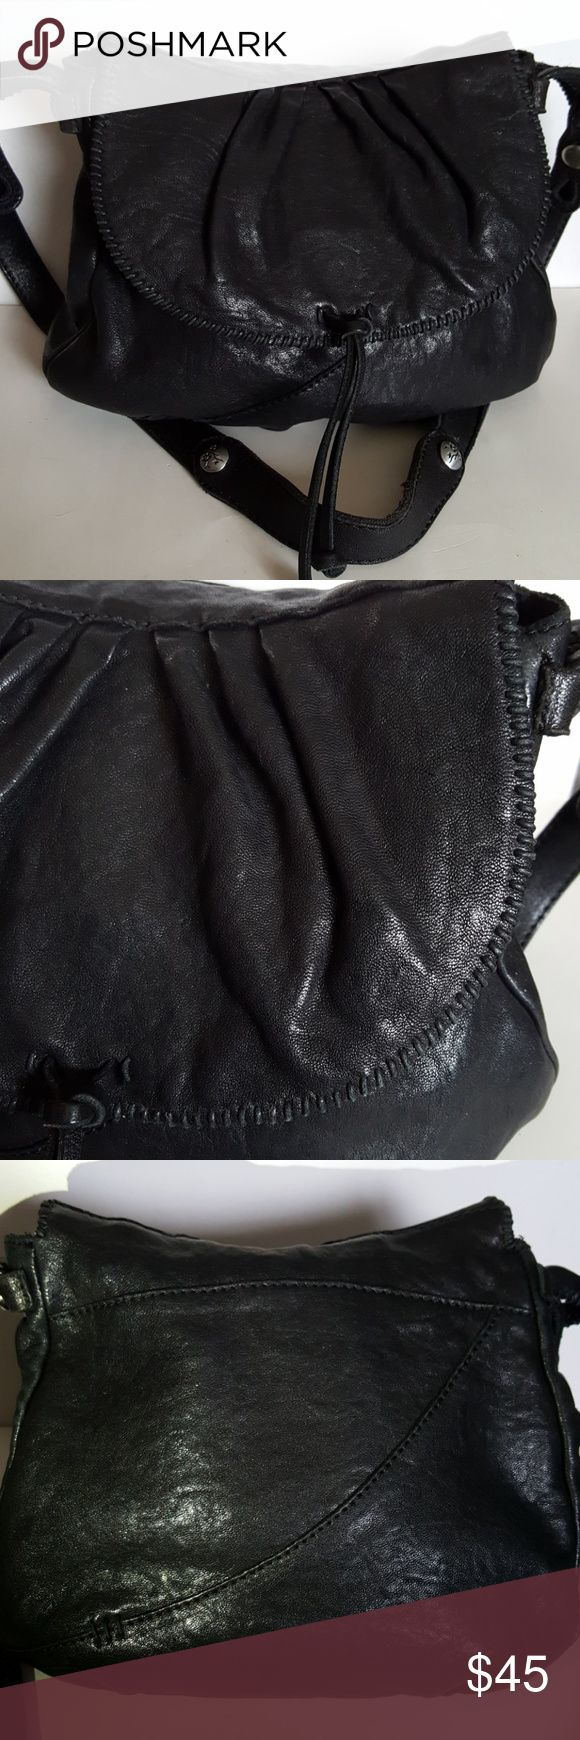 LUCKY BRAND PURSE Beautiful Lucky Brand Slouchy Hobo Shoulder Bag in Lamb Leather. 1 zipper pocket, 2 slip pockets inside and magnetic closure. Black fabric interior.  Whiplash detail gives it great style. Bag is in very good condition with very minor wear on parts of handle (see picture). Overall very good condition.  Please ask questions or for more pictures if needed.  NO TRADES. Lucky Brand Bags Hobos